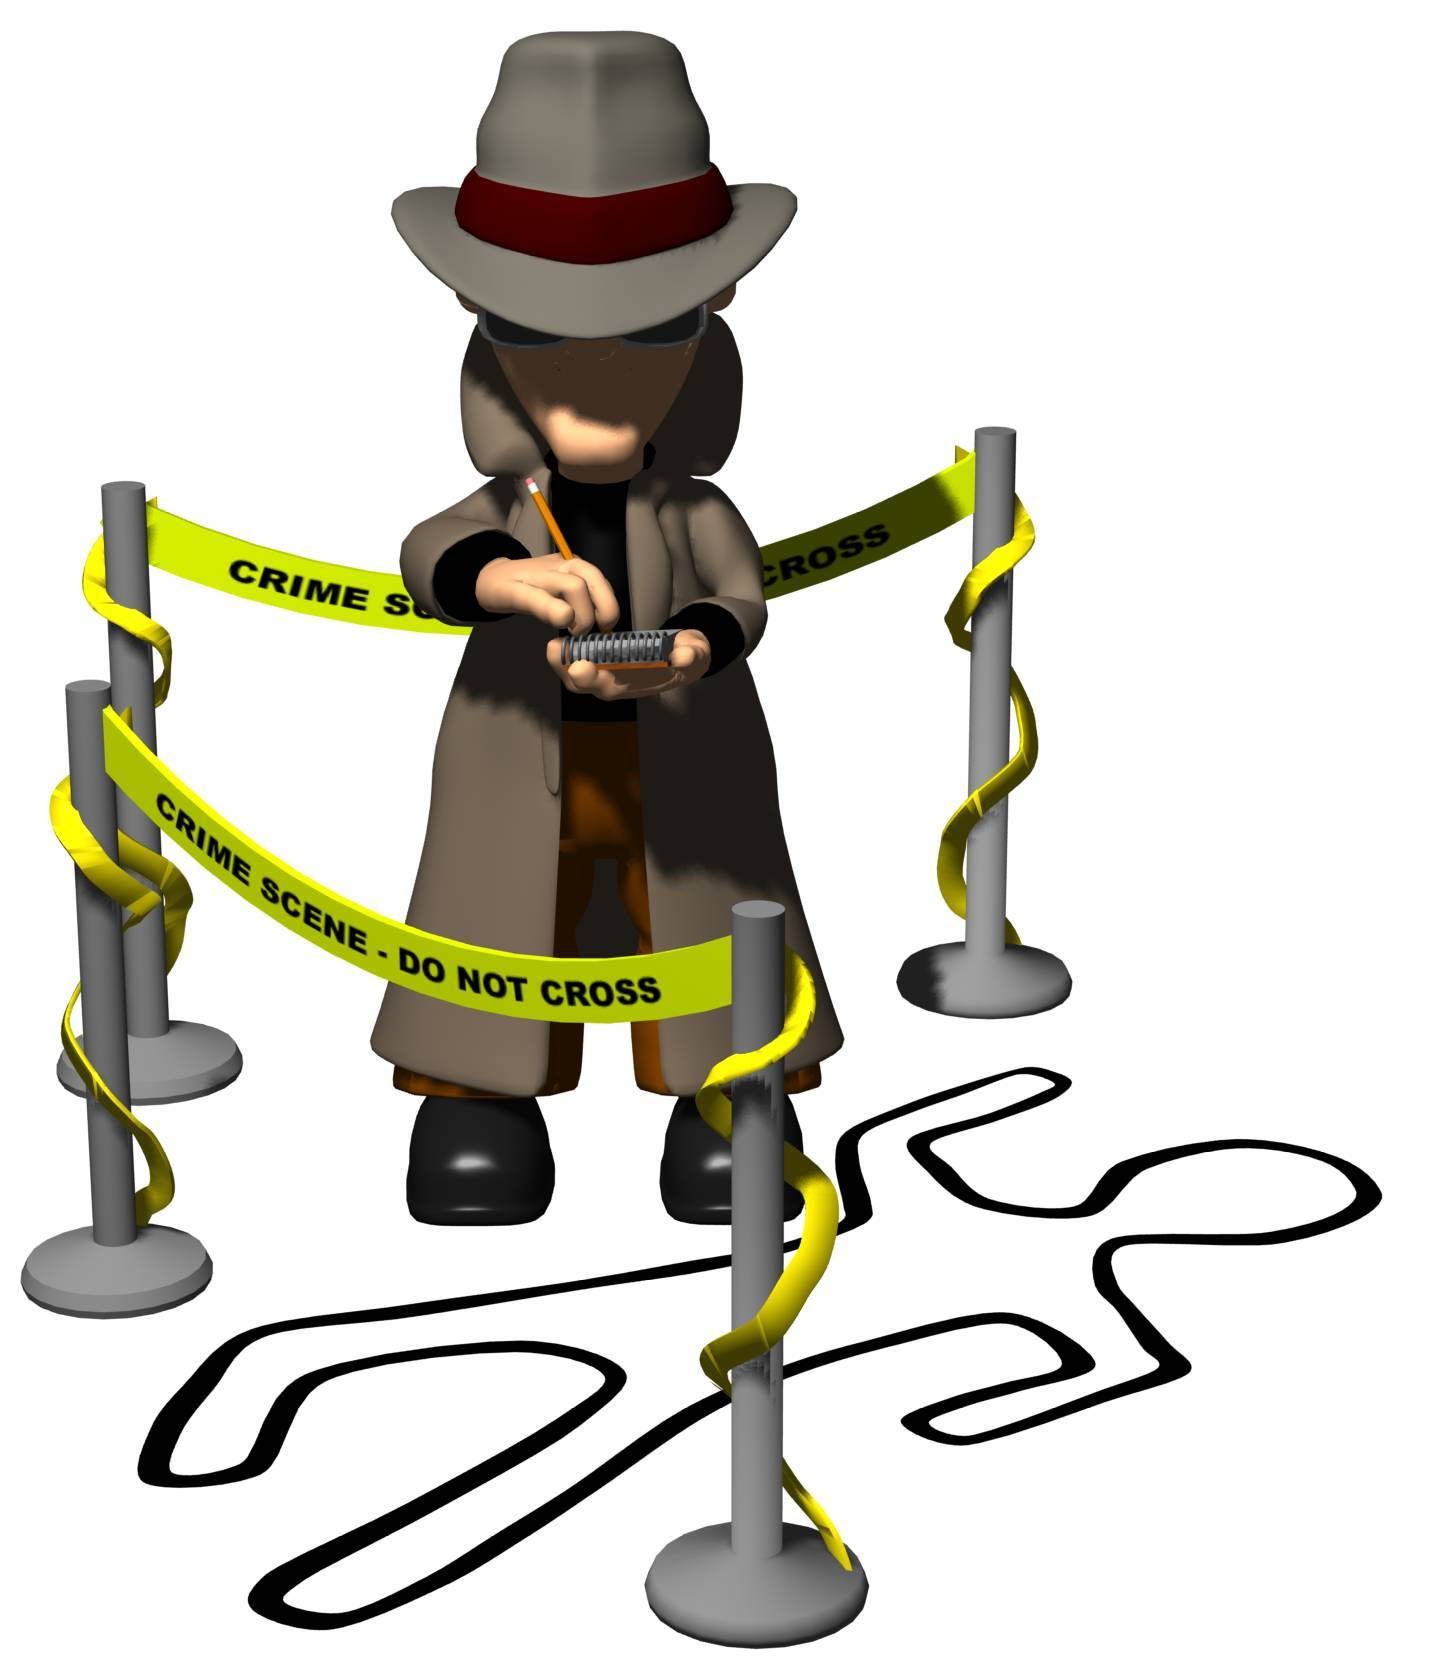 Crime Scene Clip Art N5 image in Vector cliparts category at pixy.